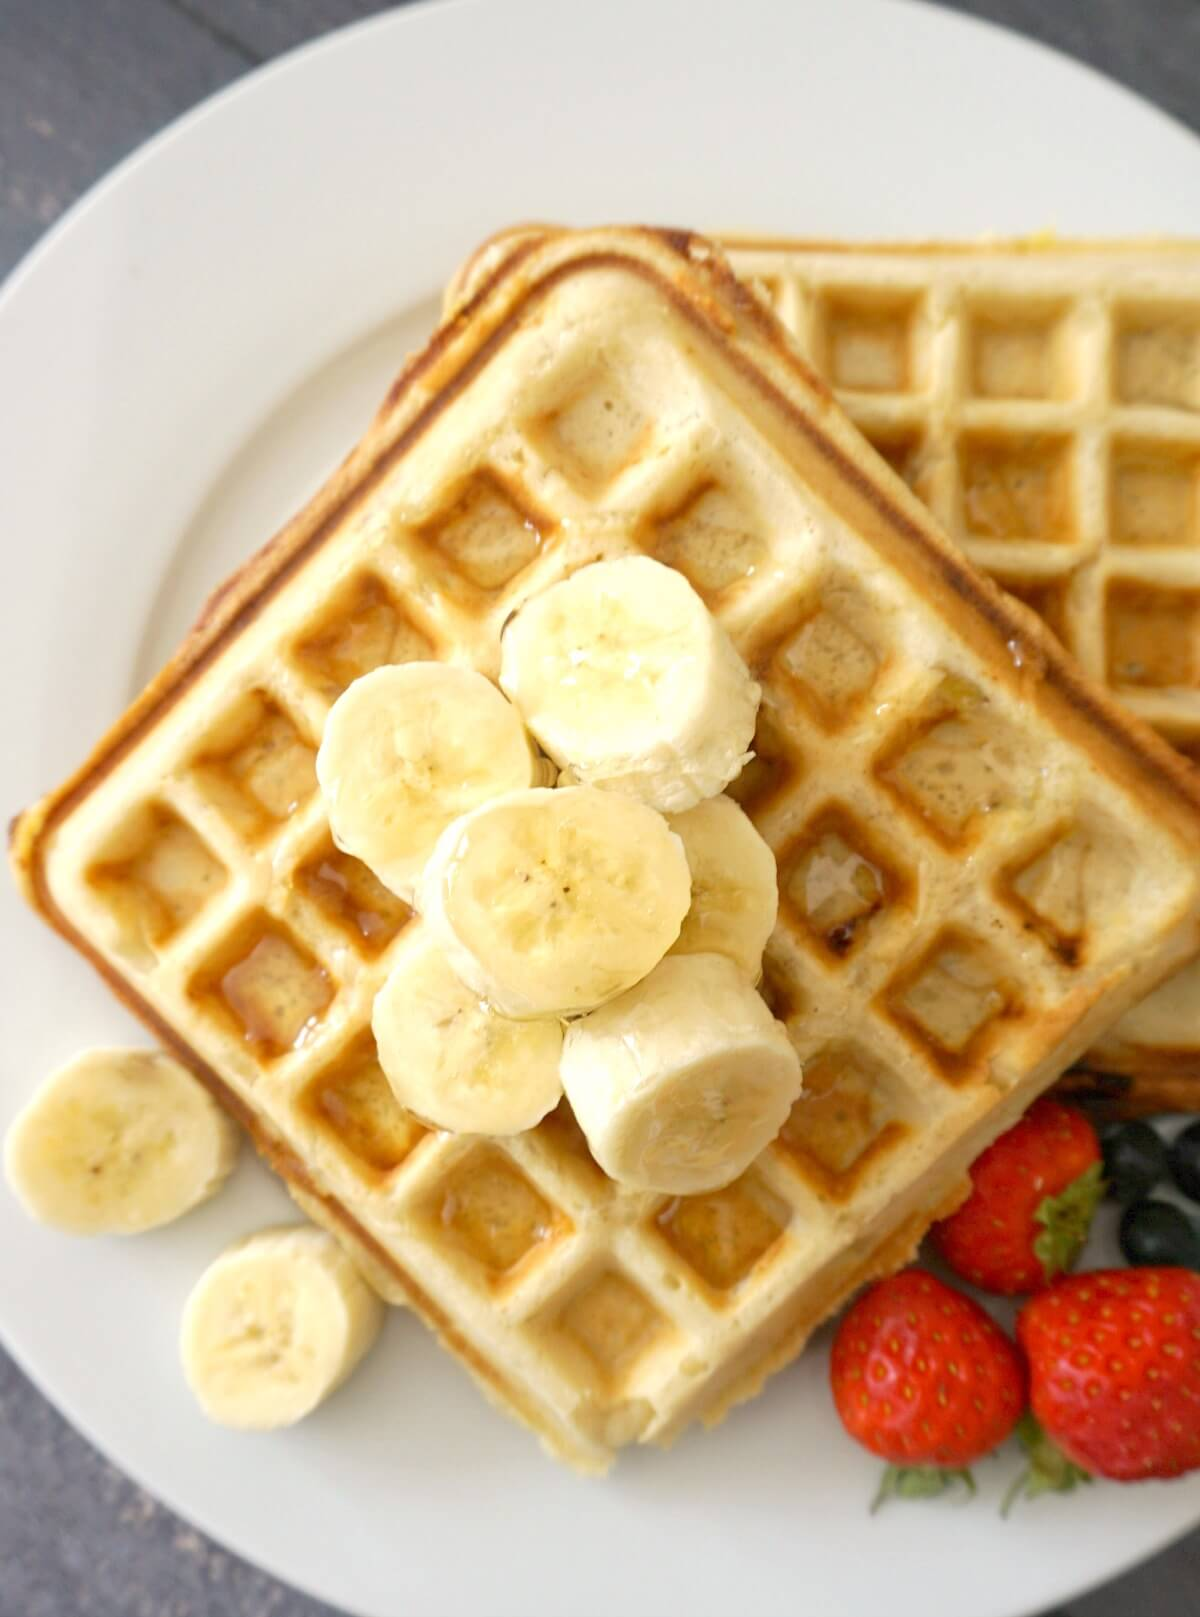 Overhead shoot of 2 waffles on a white plate with slices of bananas around,  3 strawberries and blueberries